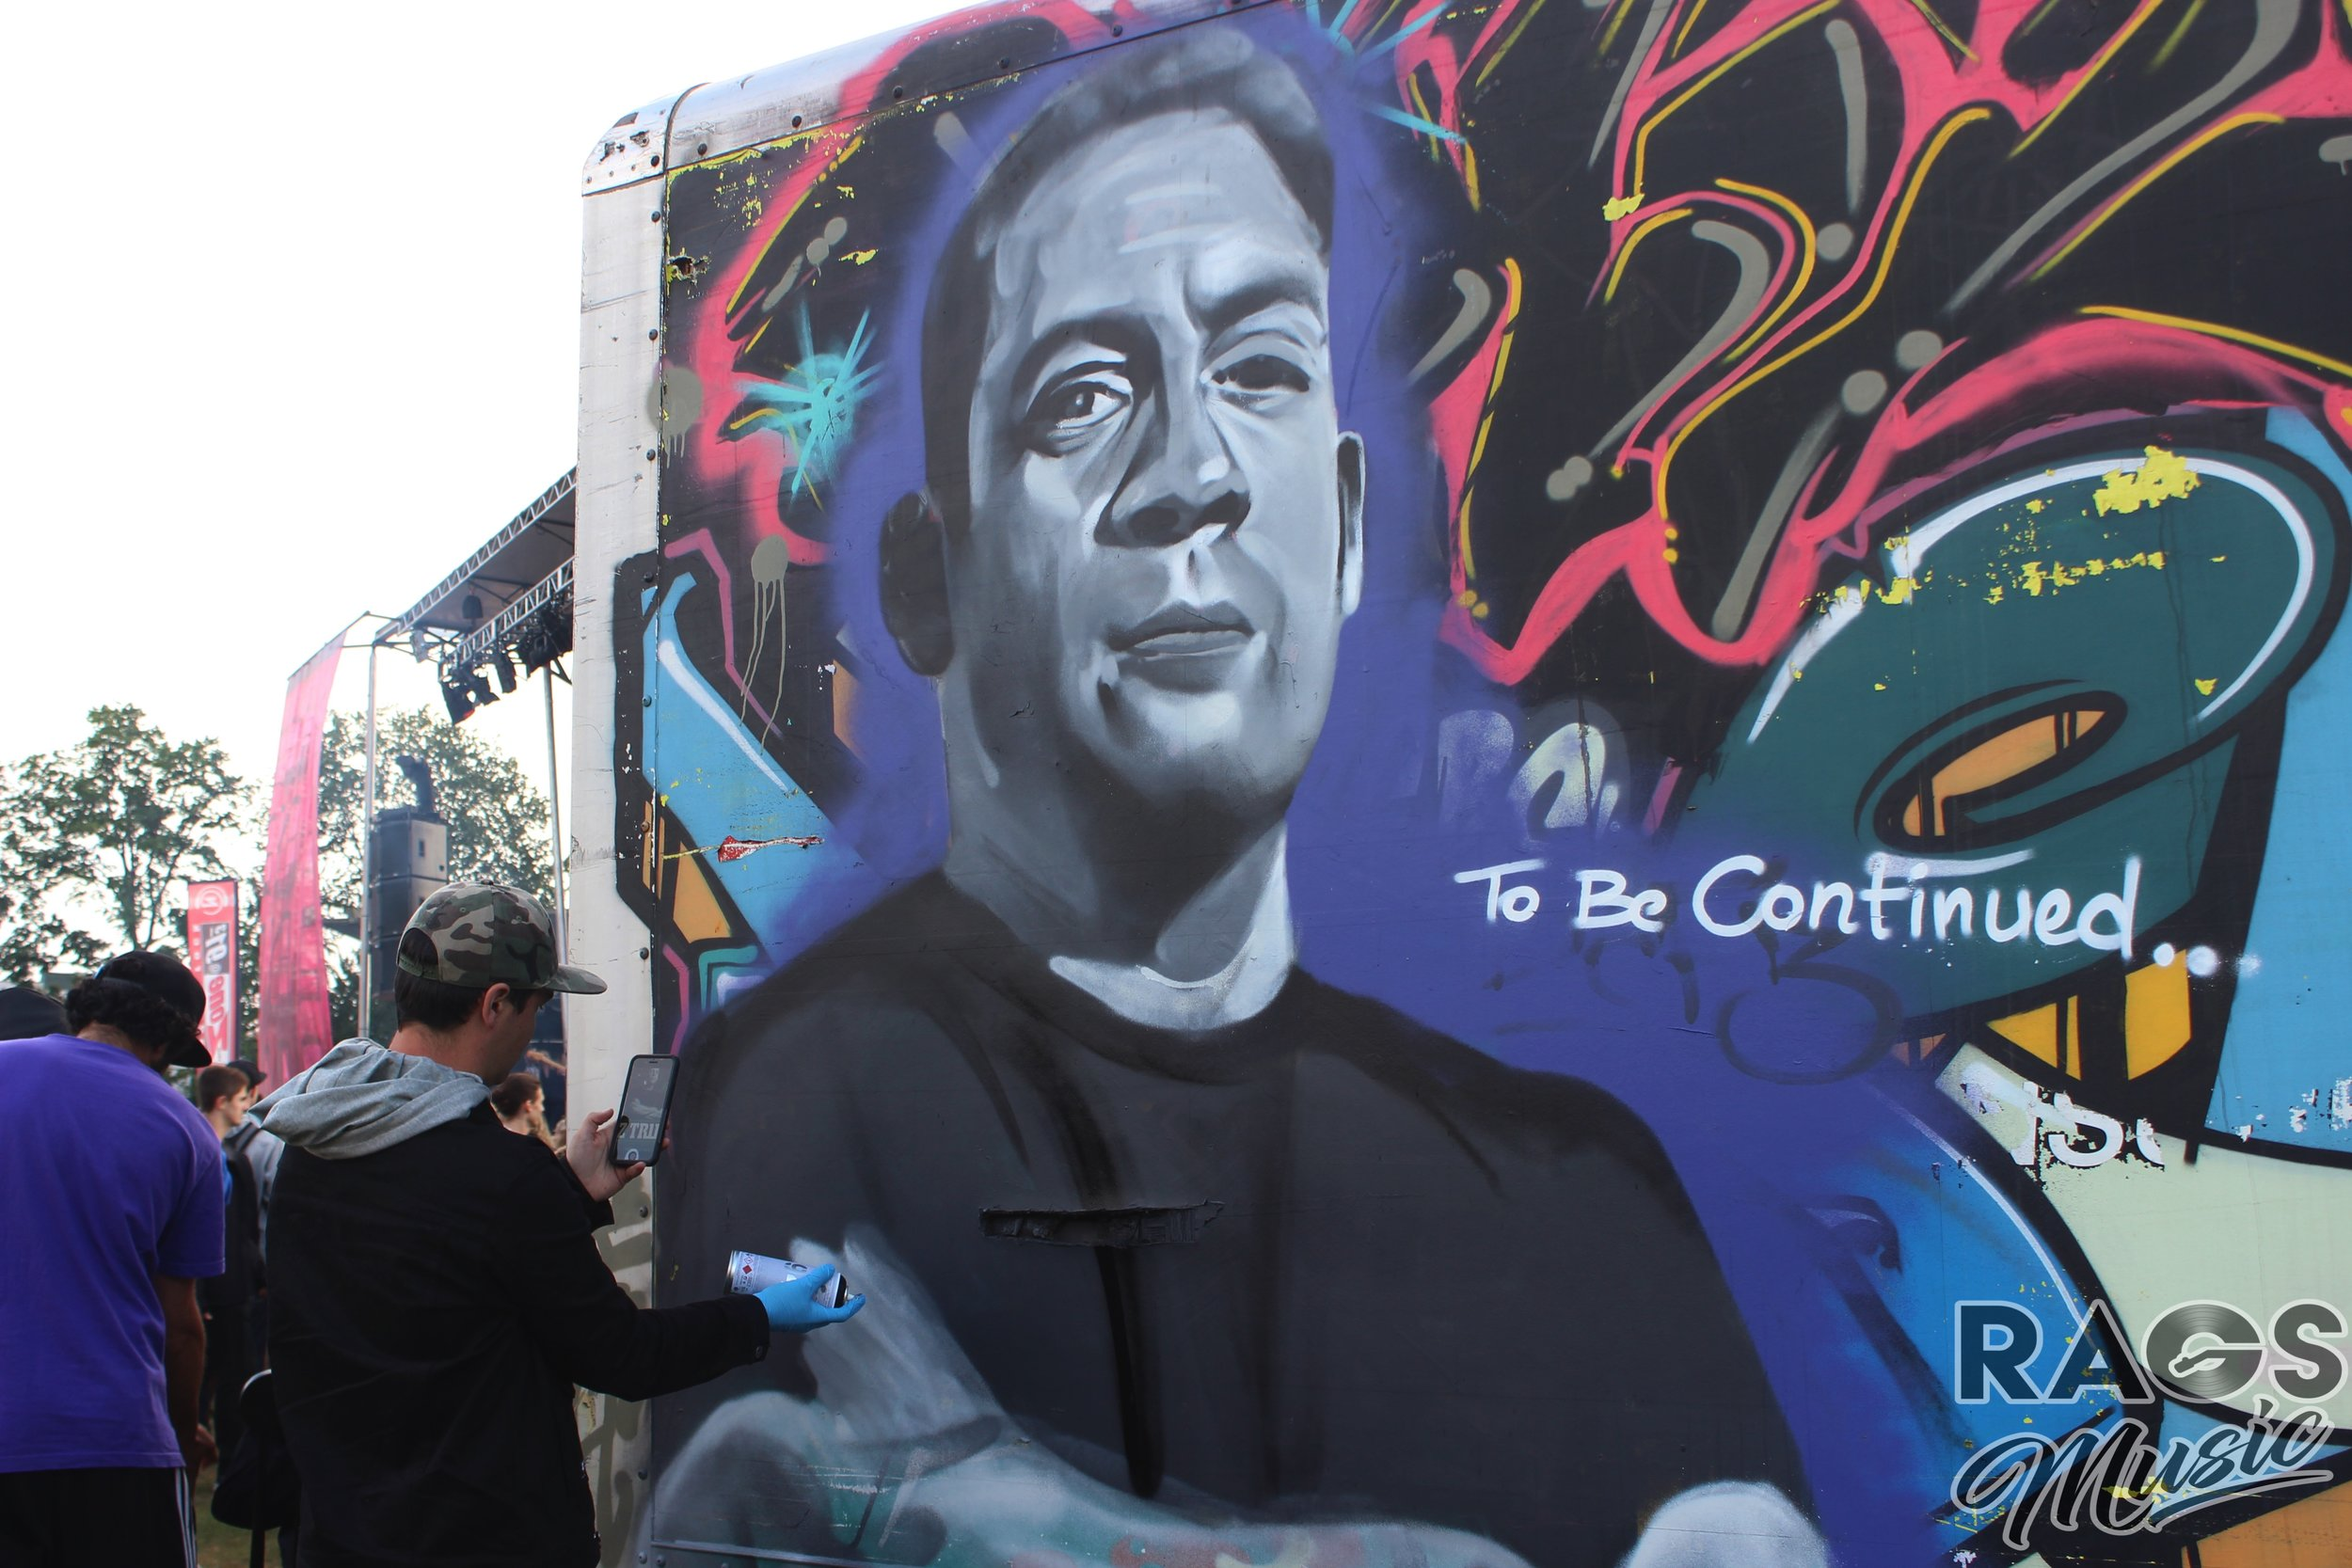 The homie  Def3  putting the finishing touches on this incredible Z-Trip portrait on the side of the  Turntemple  at Rifflandia.